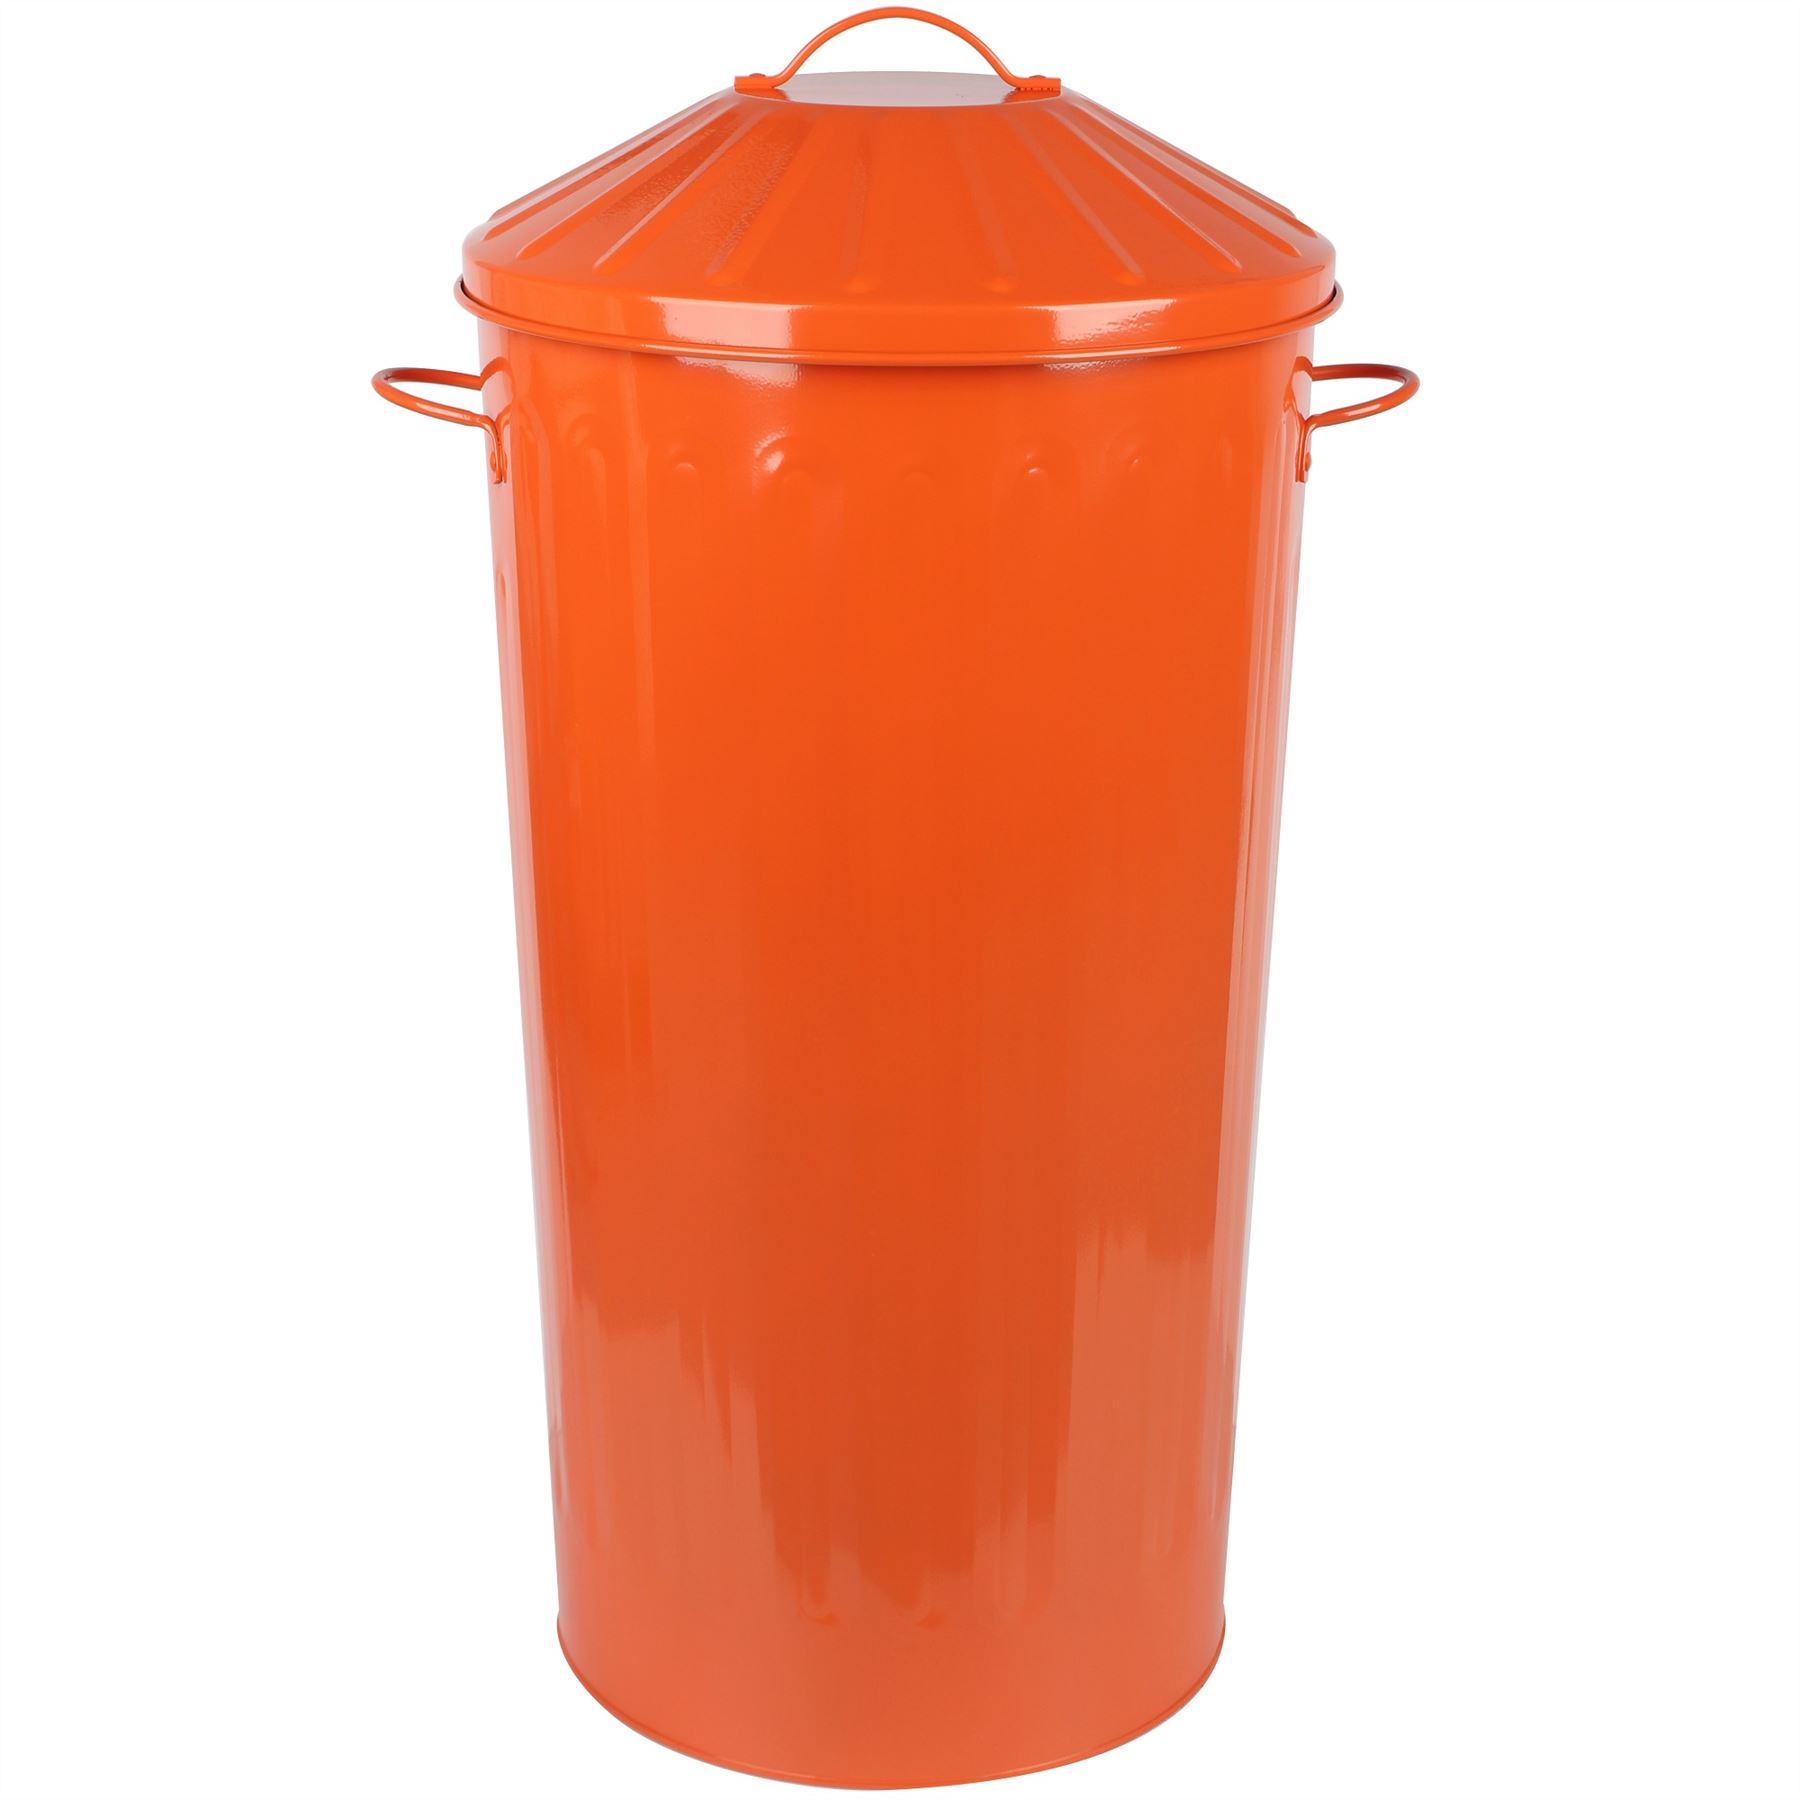 Small Metal Trash Cans With Lids Metal 50 Litre Kitchen Round Colour Recycle Dustbin